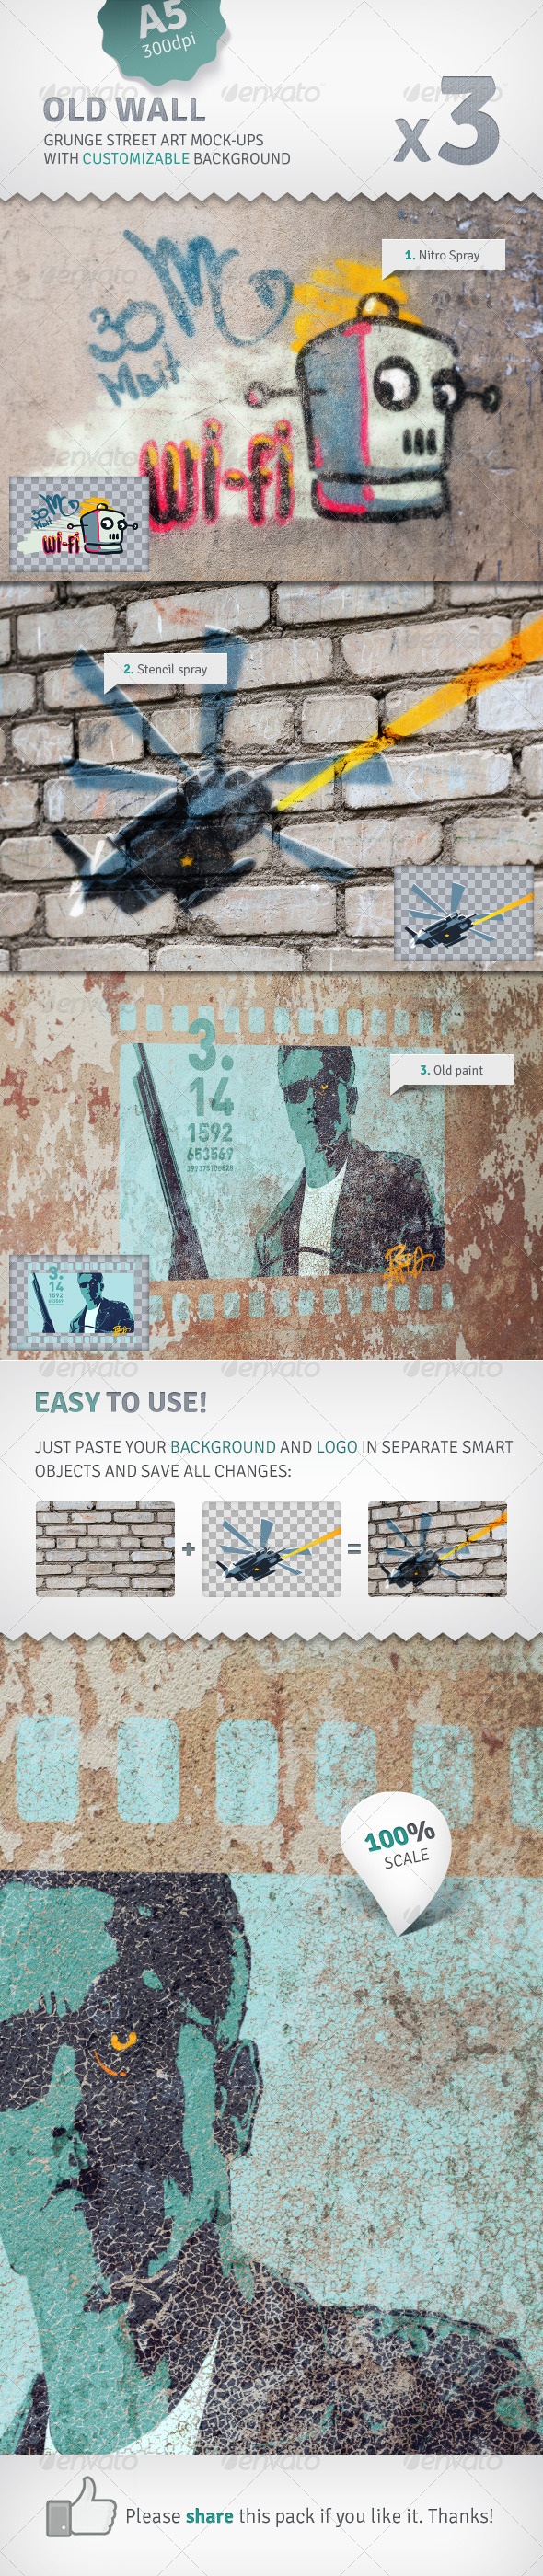 Wall - 3 Graffiti Street Art Mockups - Miscellaneous Product Mock-Ups